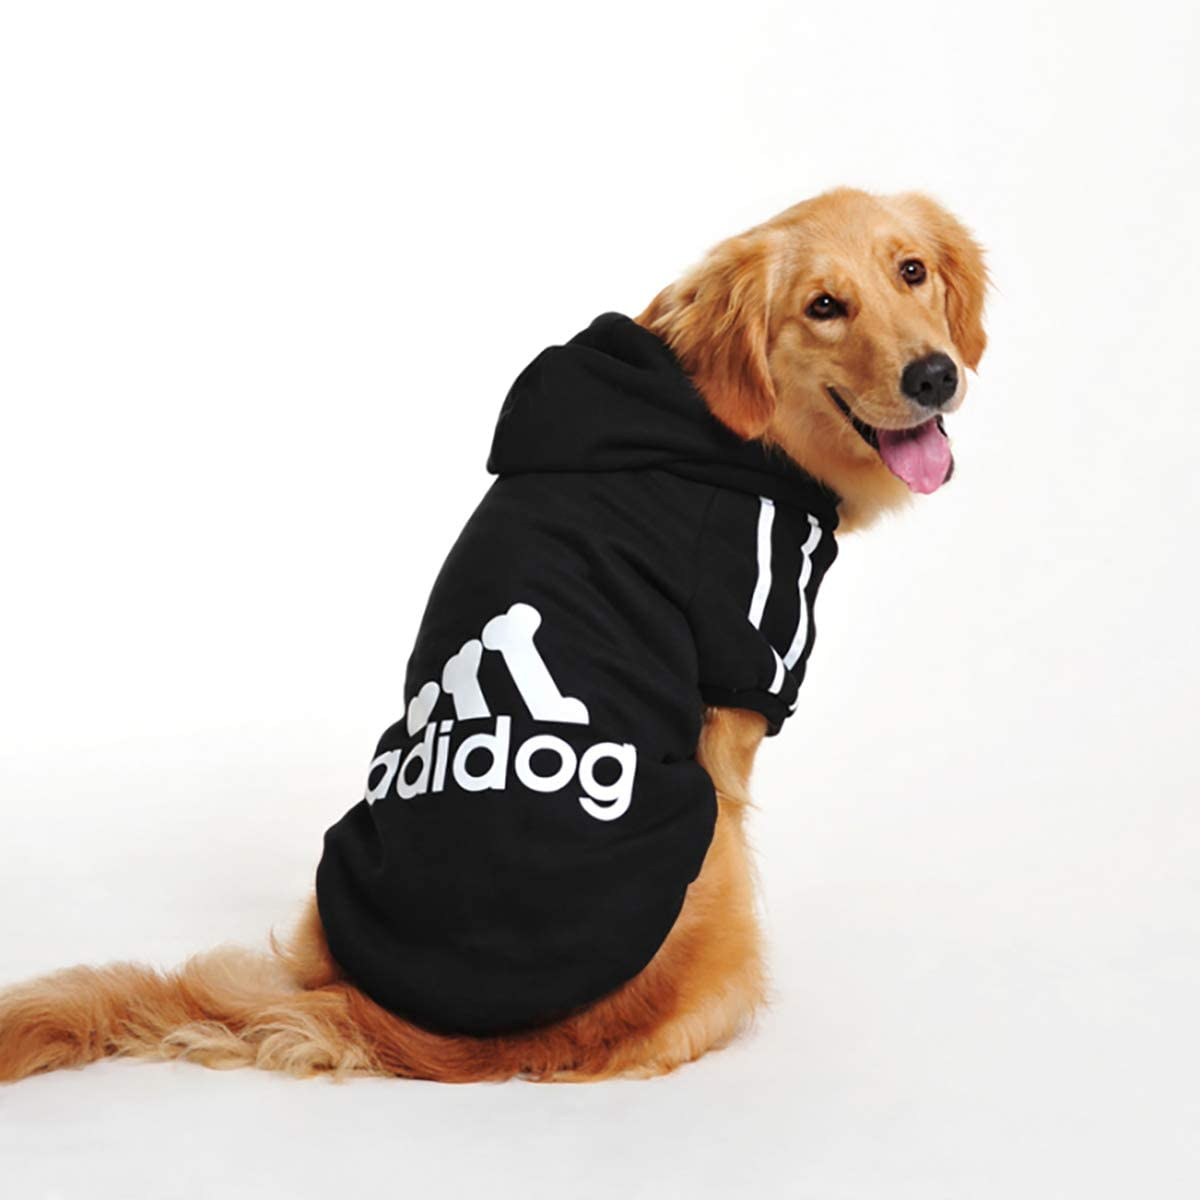 Large Dog Adidog Hoodie Costume Outfits Sweater Dog Winter Coat Warm Sweatshirt Winter Jacket Dog Apparel for Cold Weather InnoPet Dog Clothes